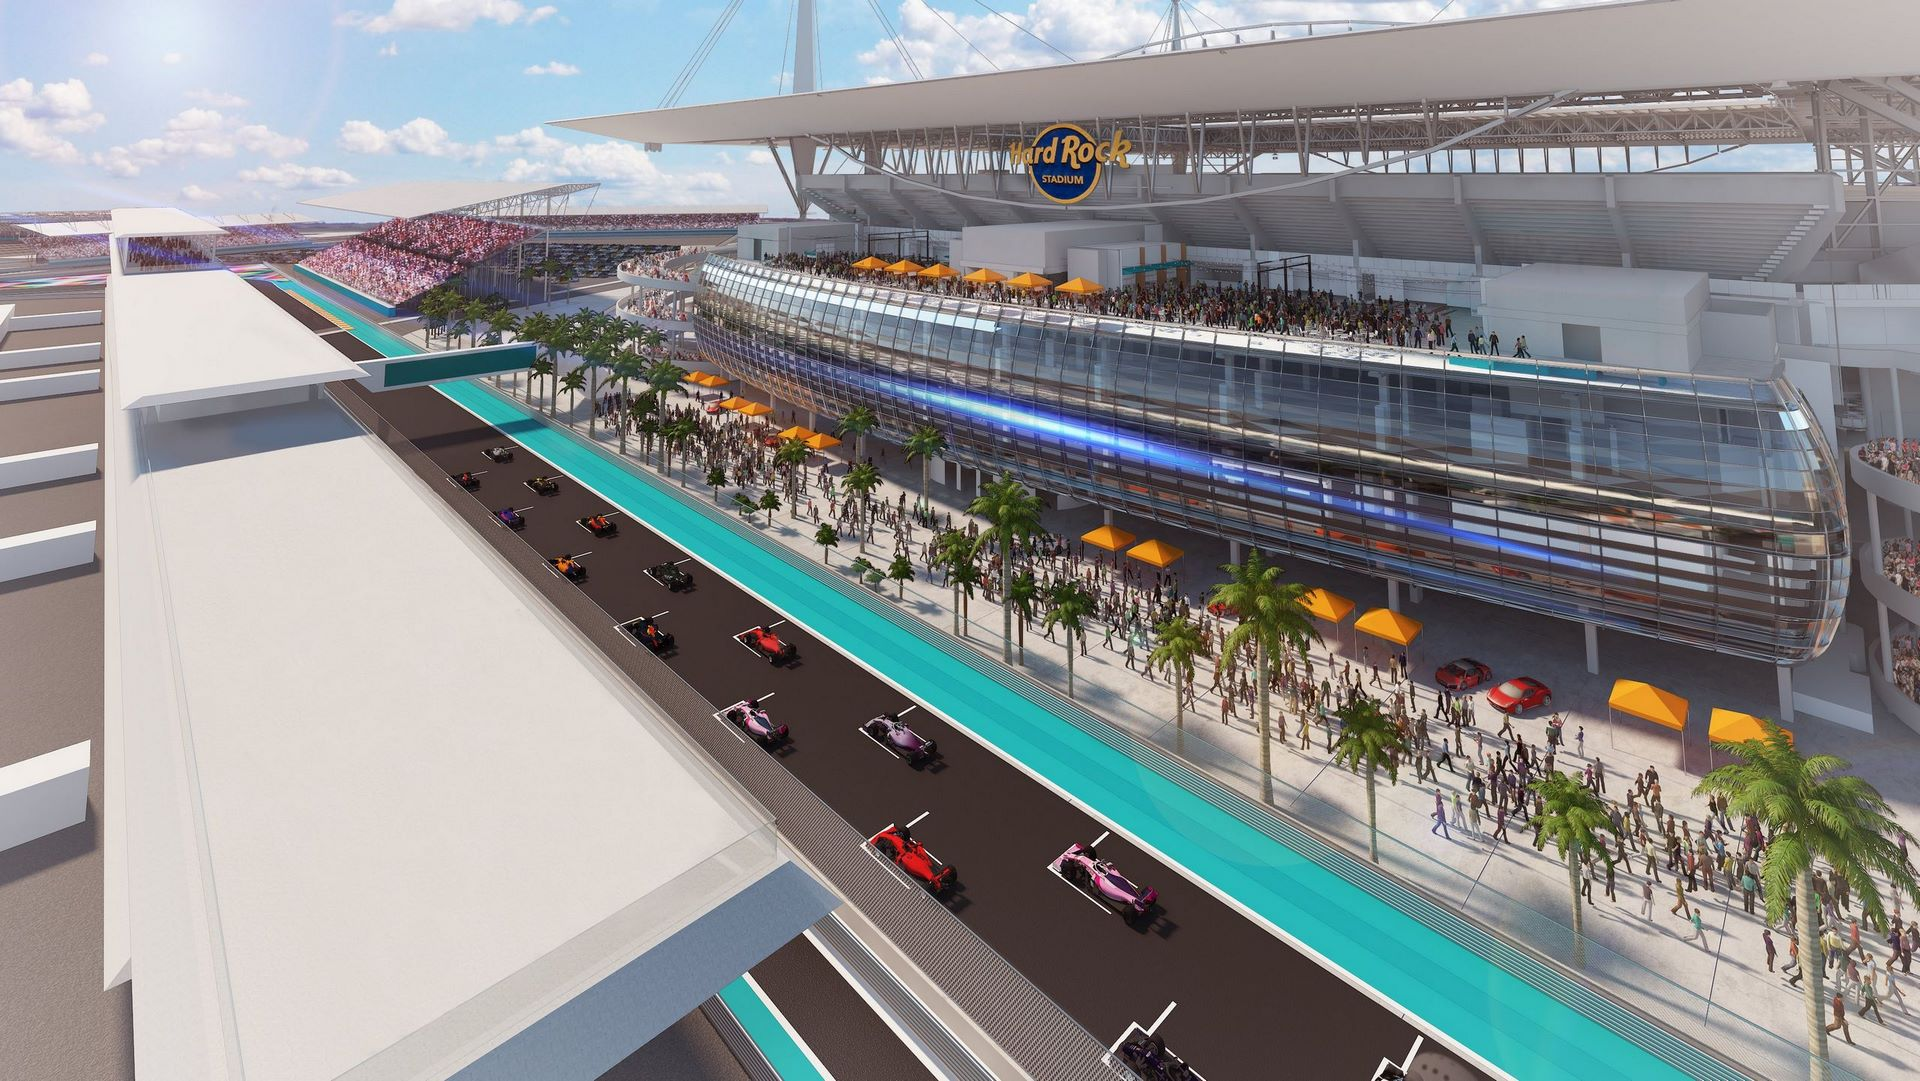 Hard-Rock-Stadium-Miami-Grand-Prix-4